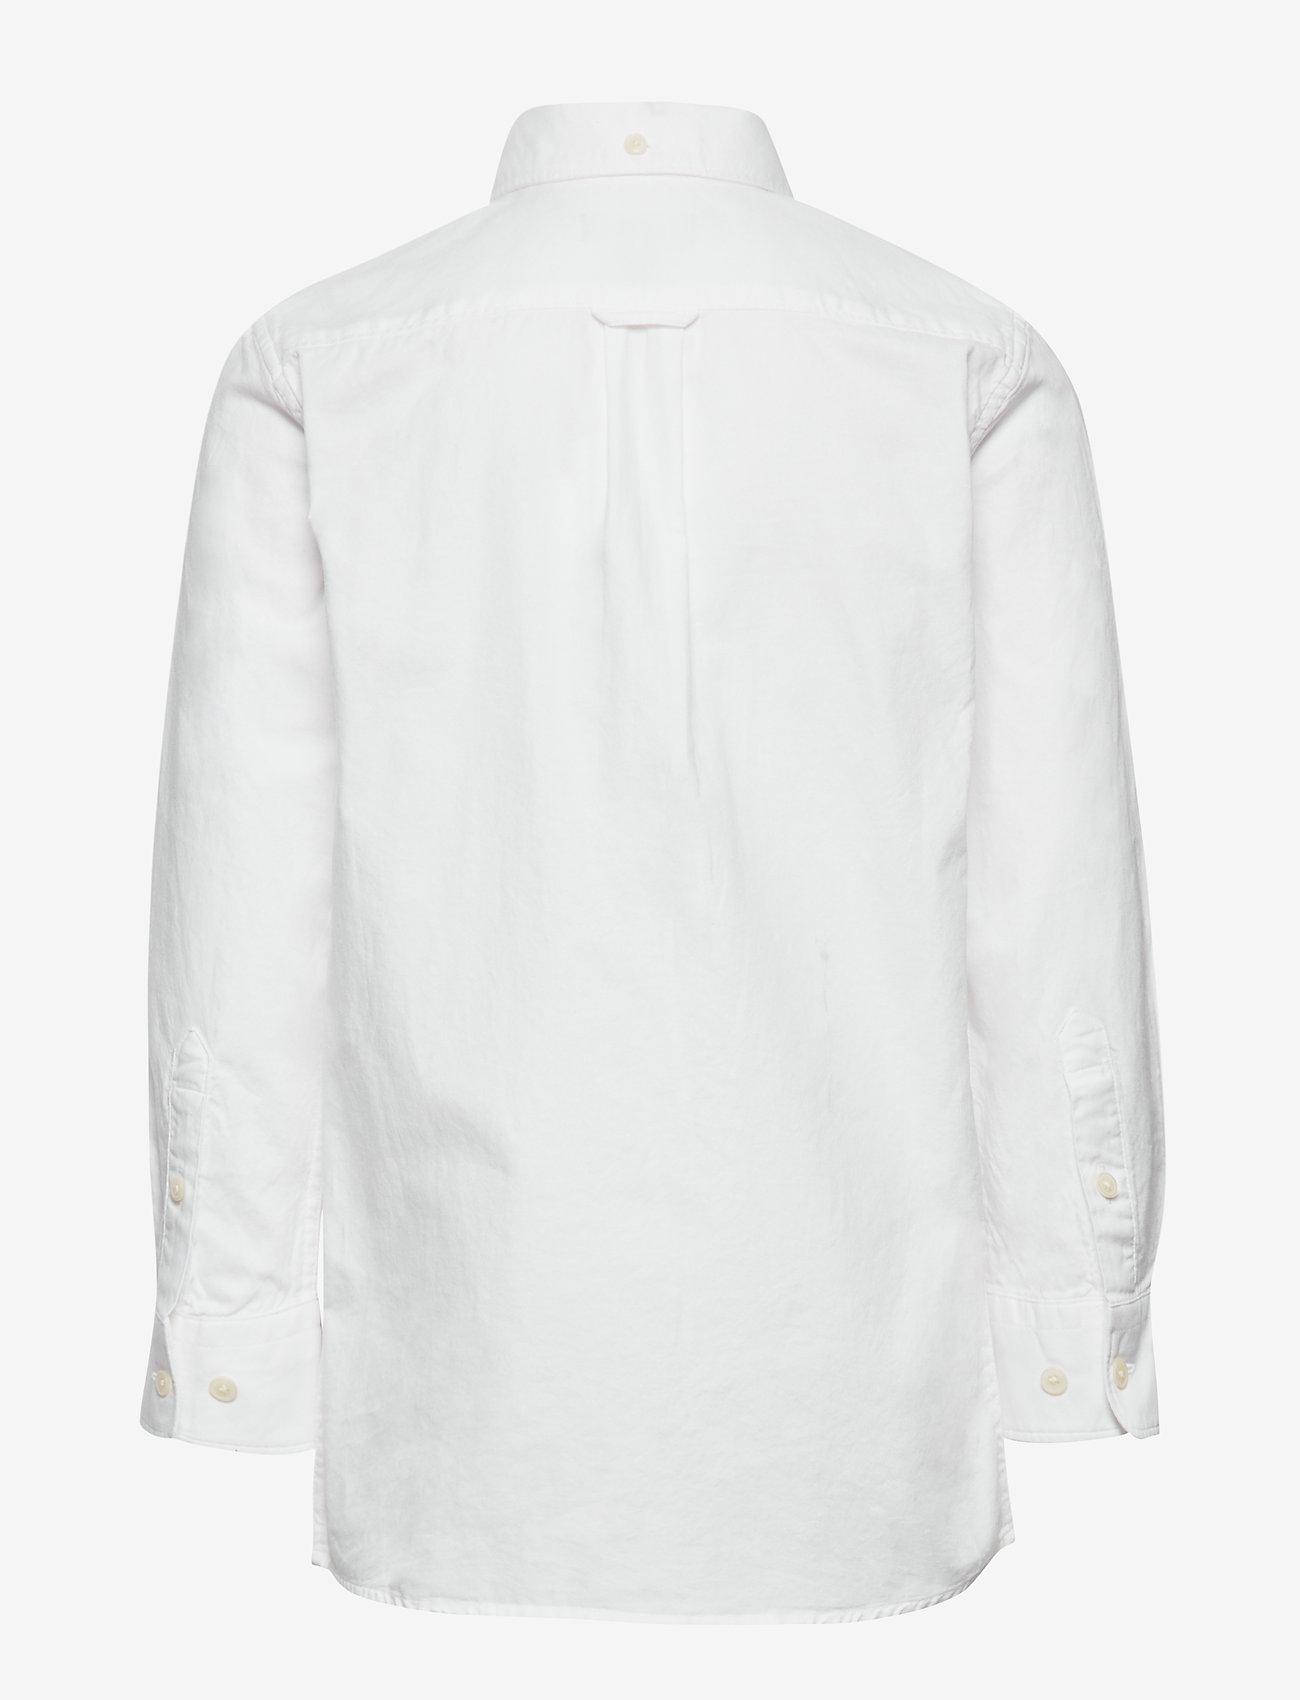 GANT - ARCHIVE OXFORD B.D SHIRT - overhemden - white - 1